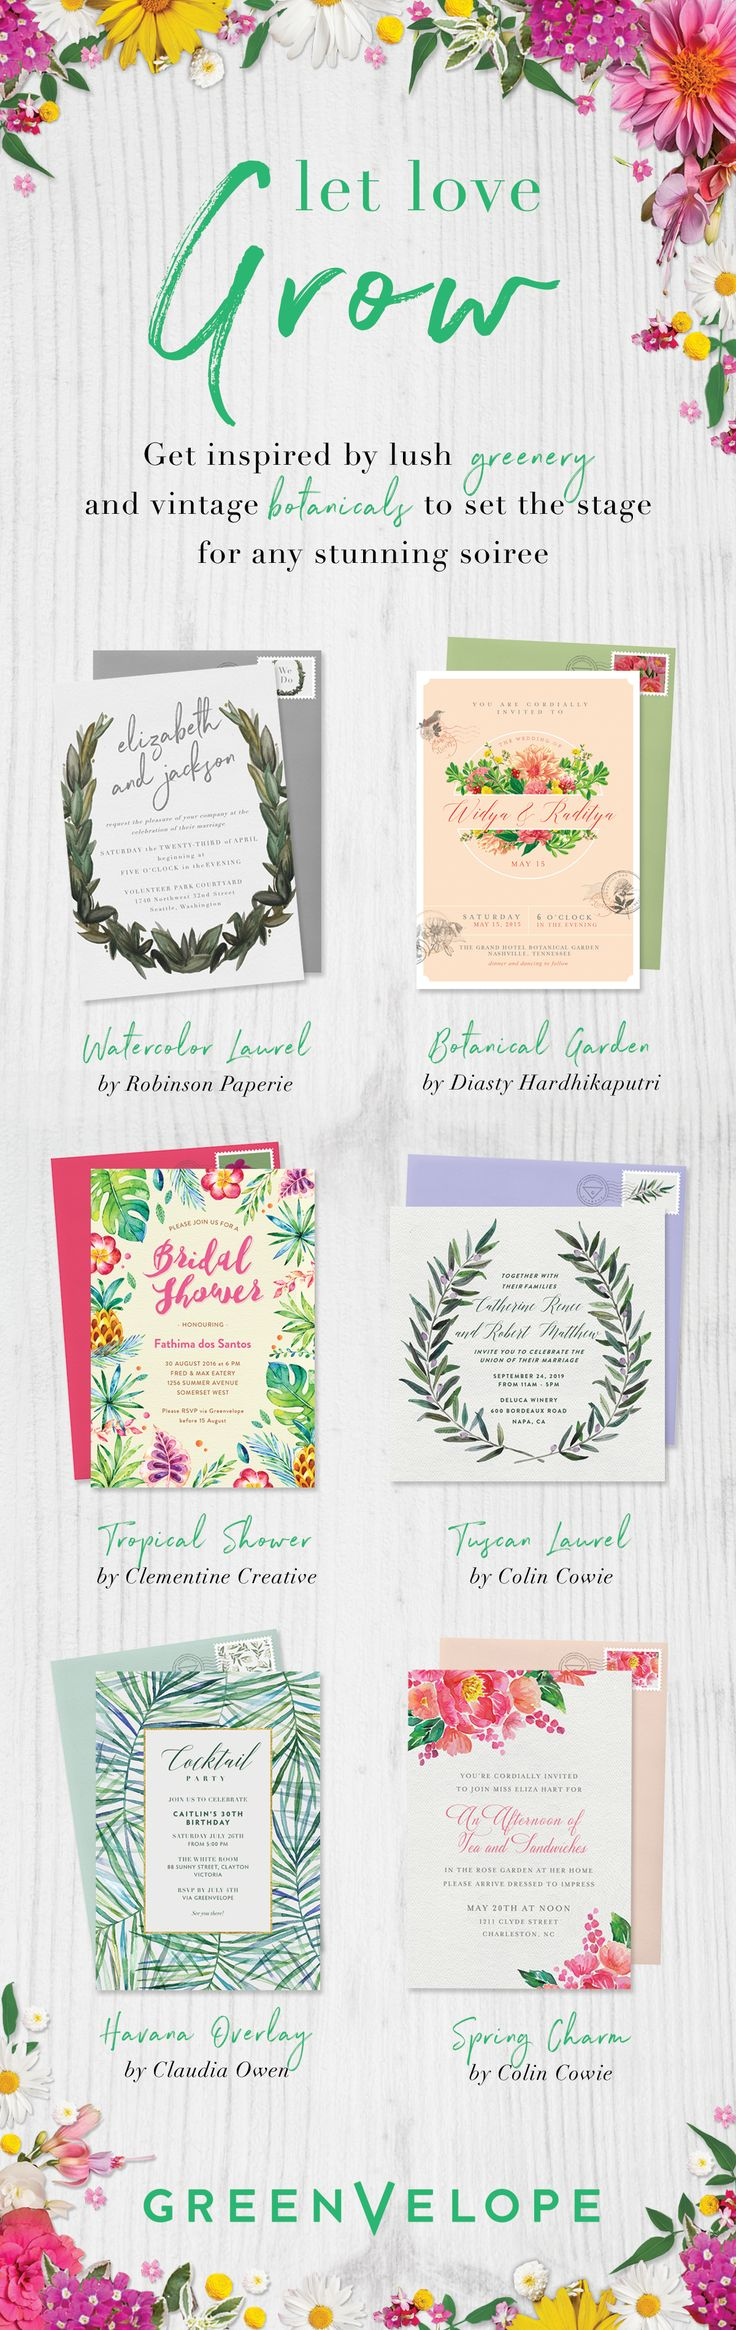 266 best Wedding Design images on Pinterest | Invitations, Weddings ...